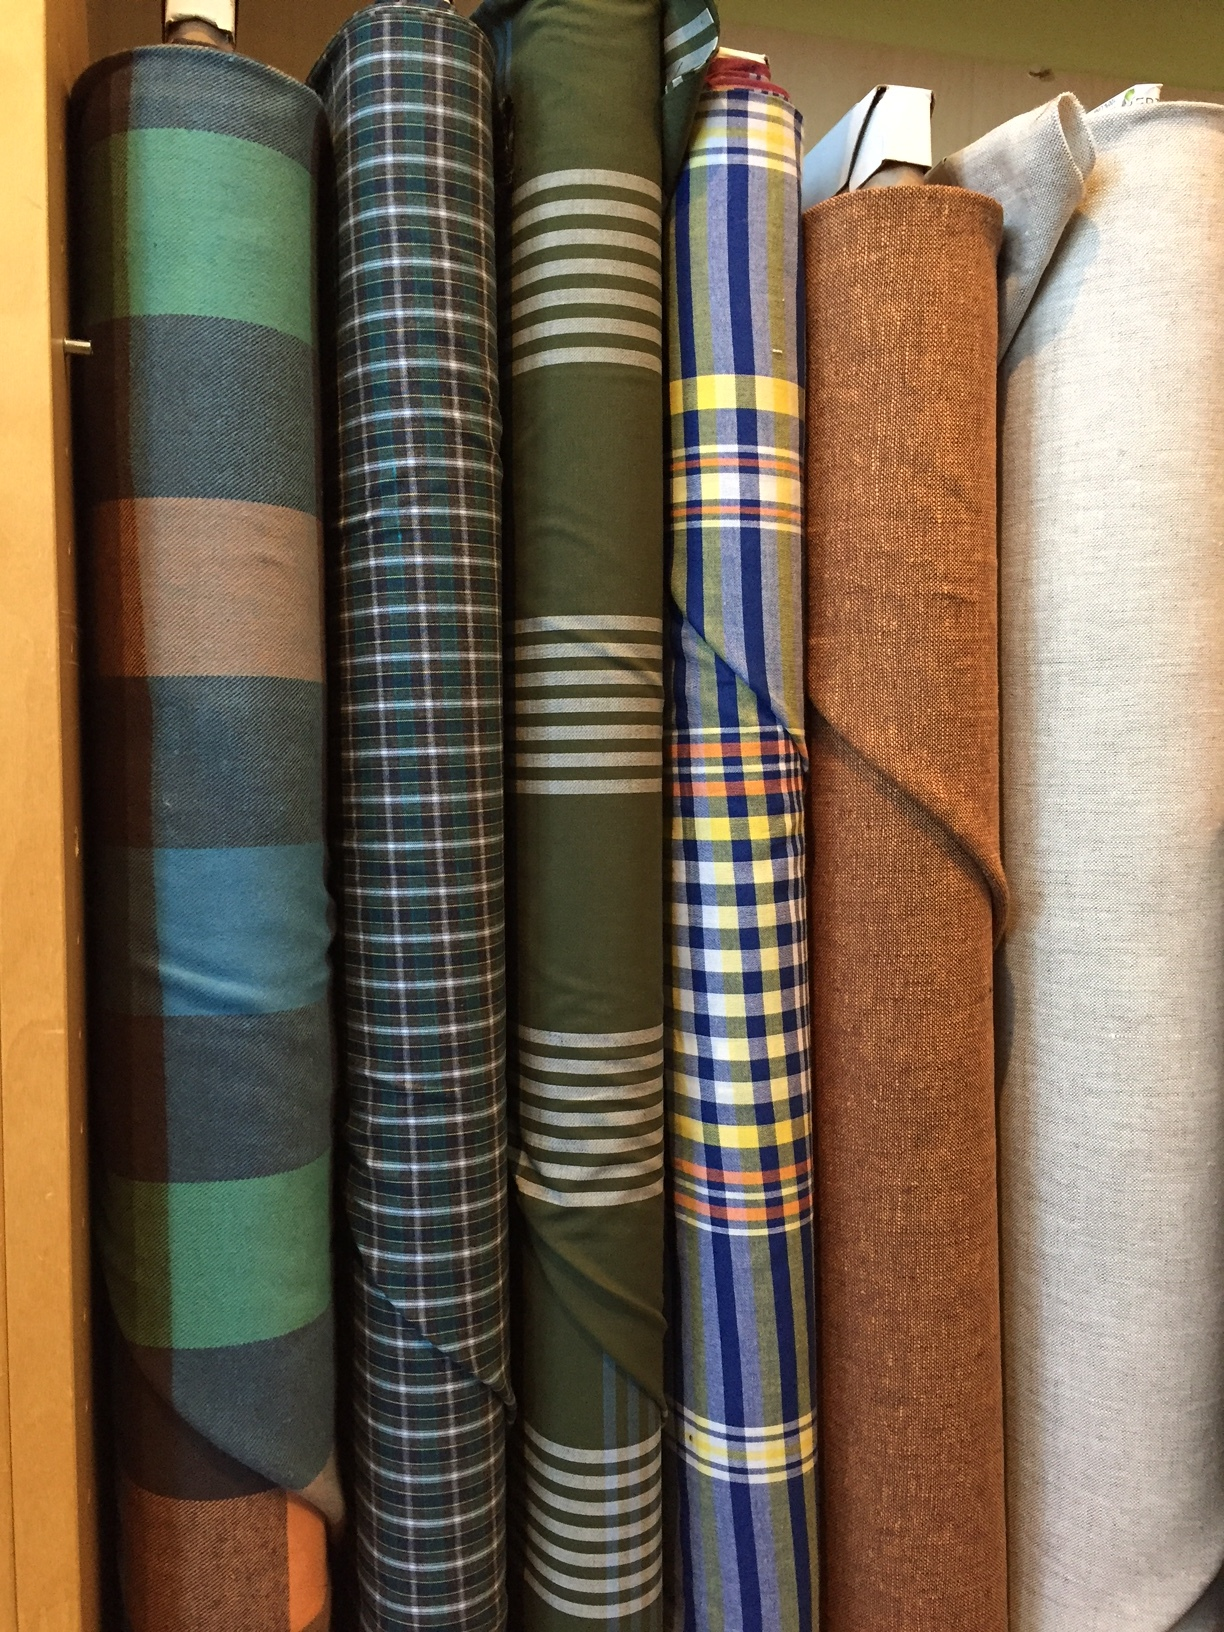 Box plaid flannel, yarn-dyed shirtings, and rusty cotton/linen blend